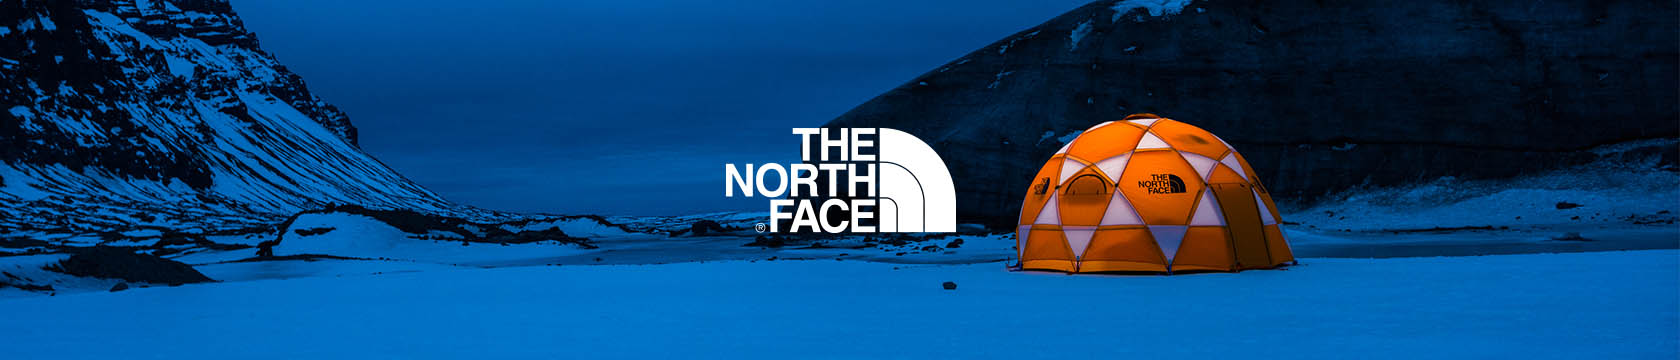 The North Face orange and white tent among snow and mountains in the dark